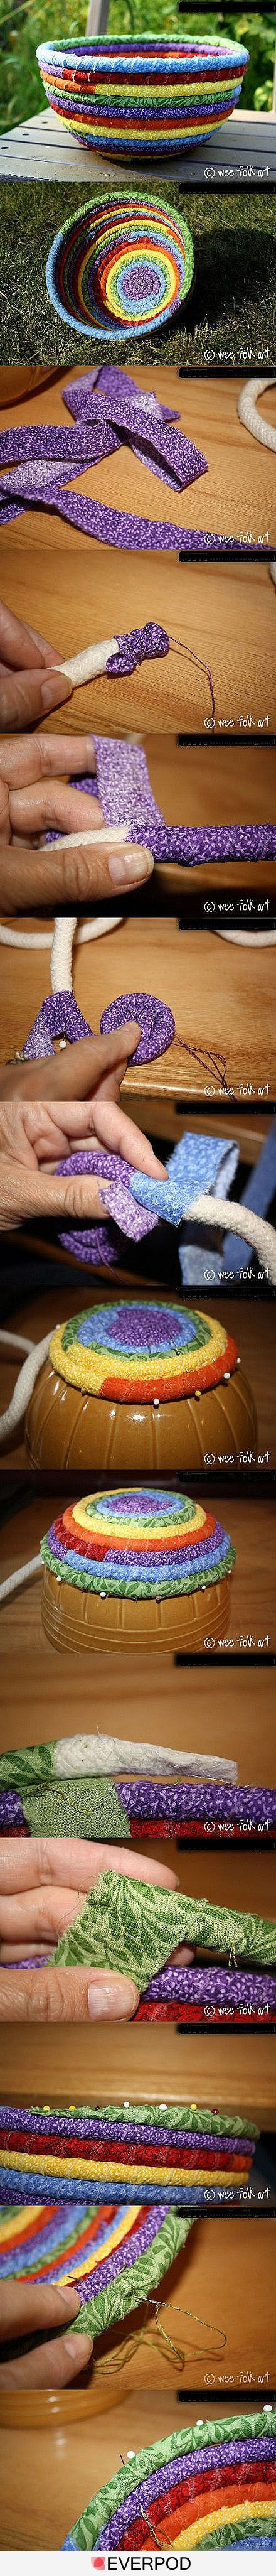 fabric rope baskets.